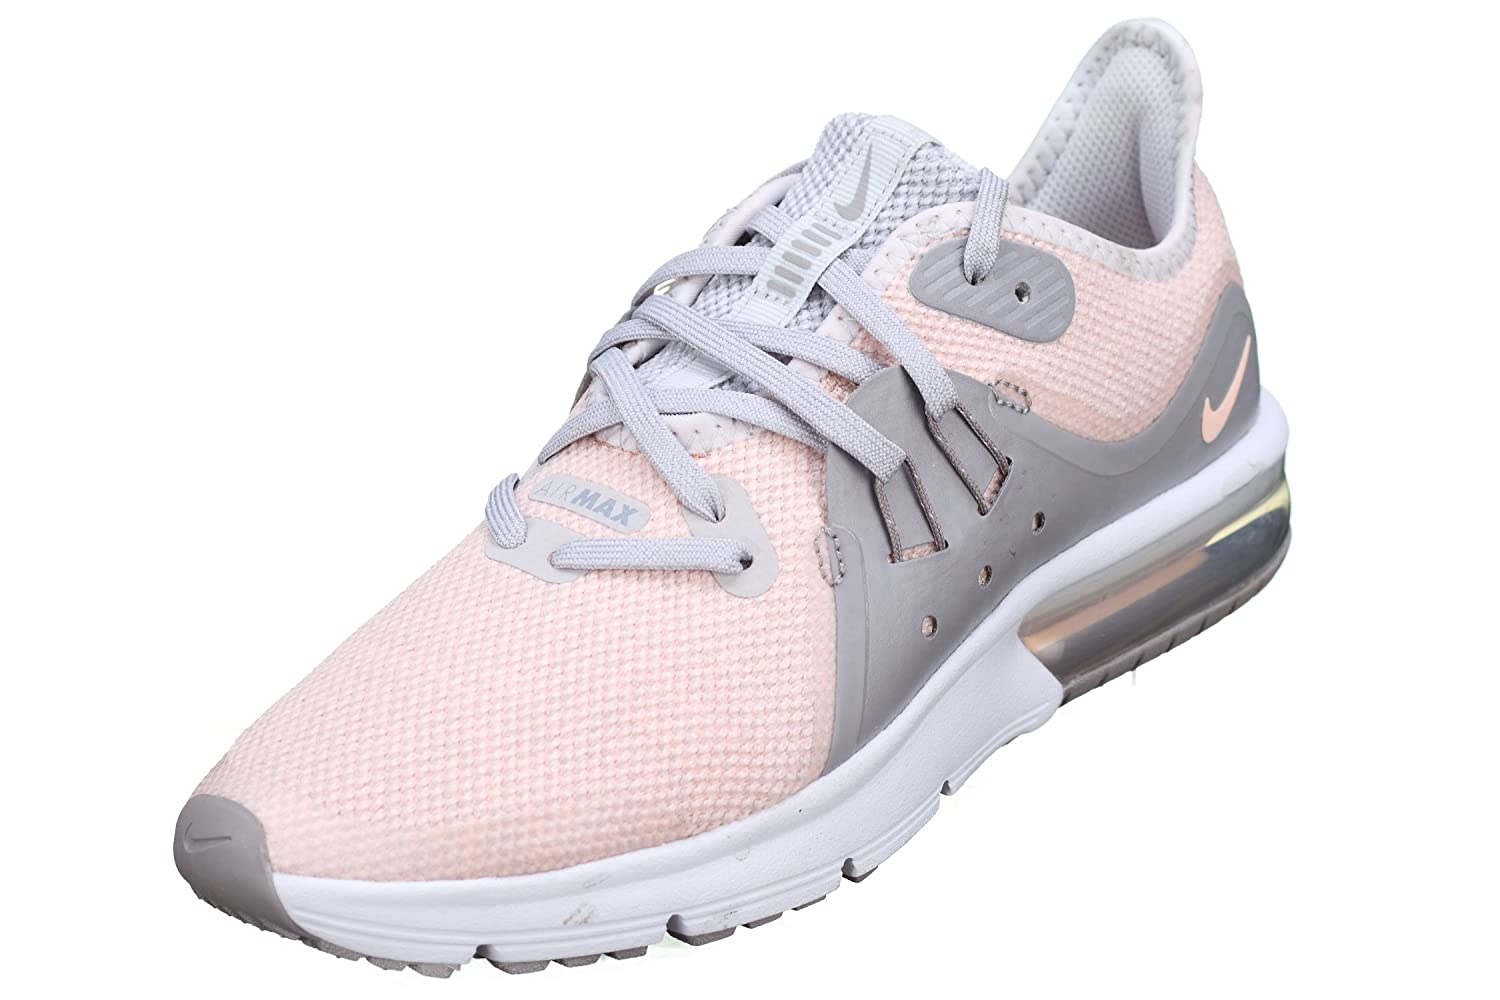 official photos 8ef0b afff8 Nike Basket Fille Air Max Sequent 3 GS 922885-004 RoseGris